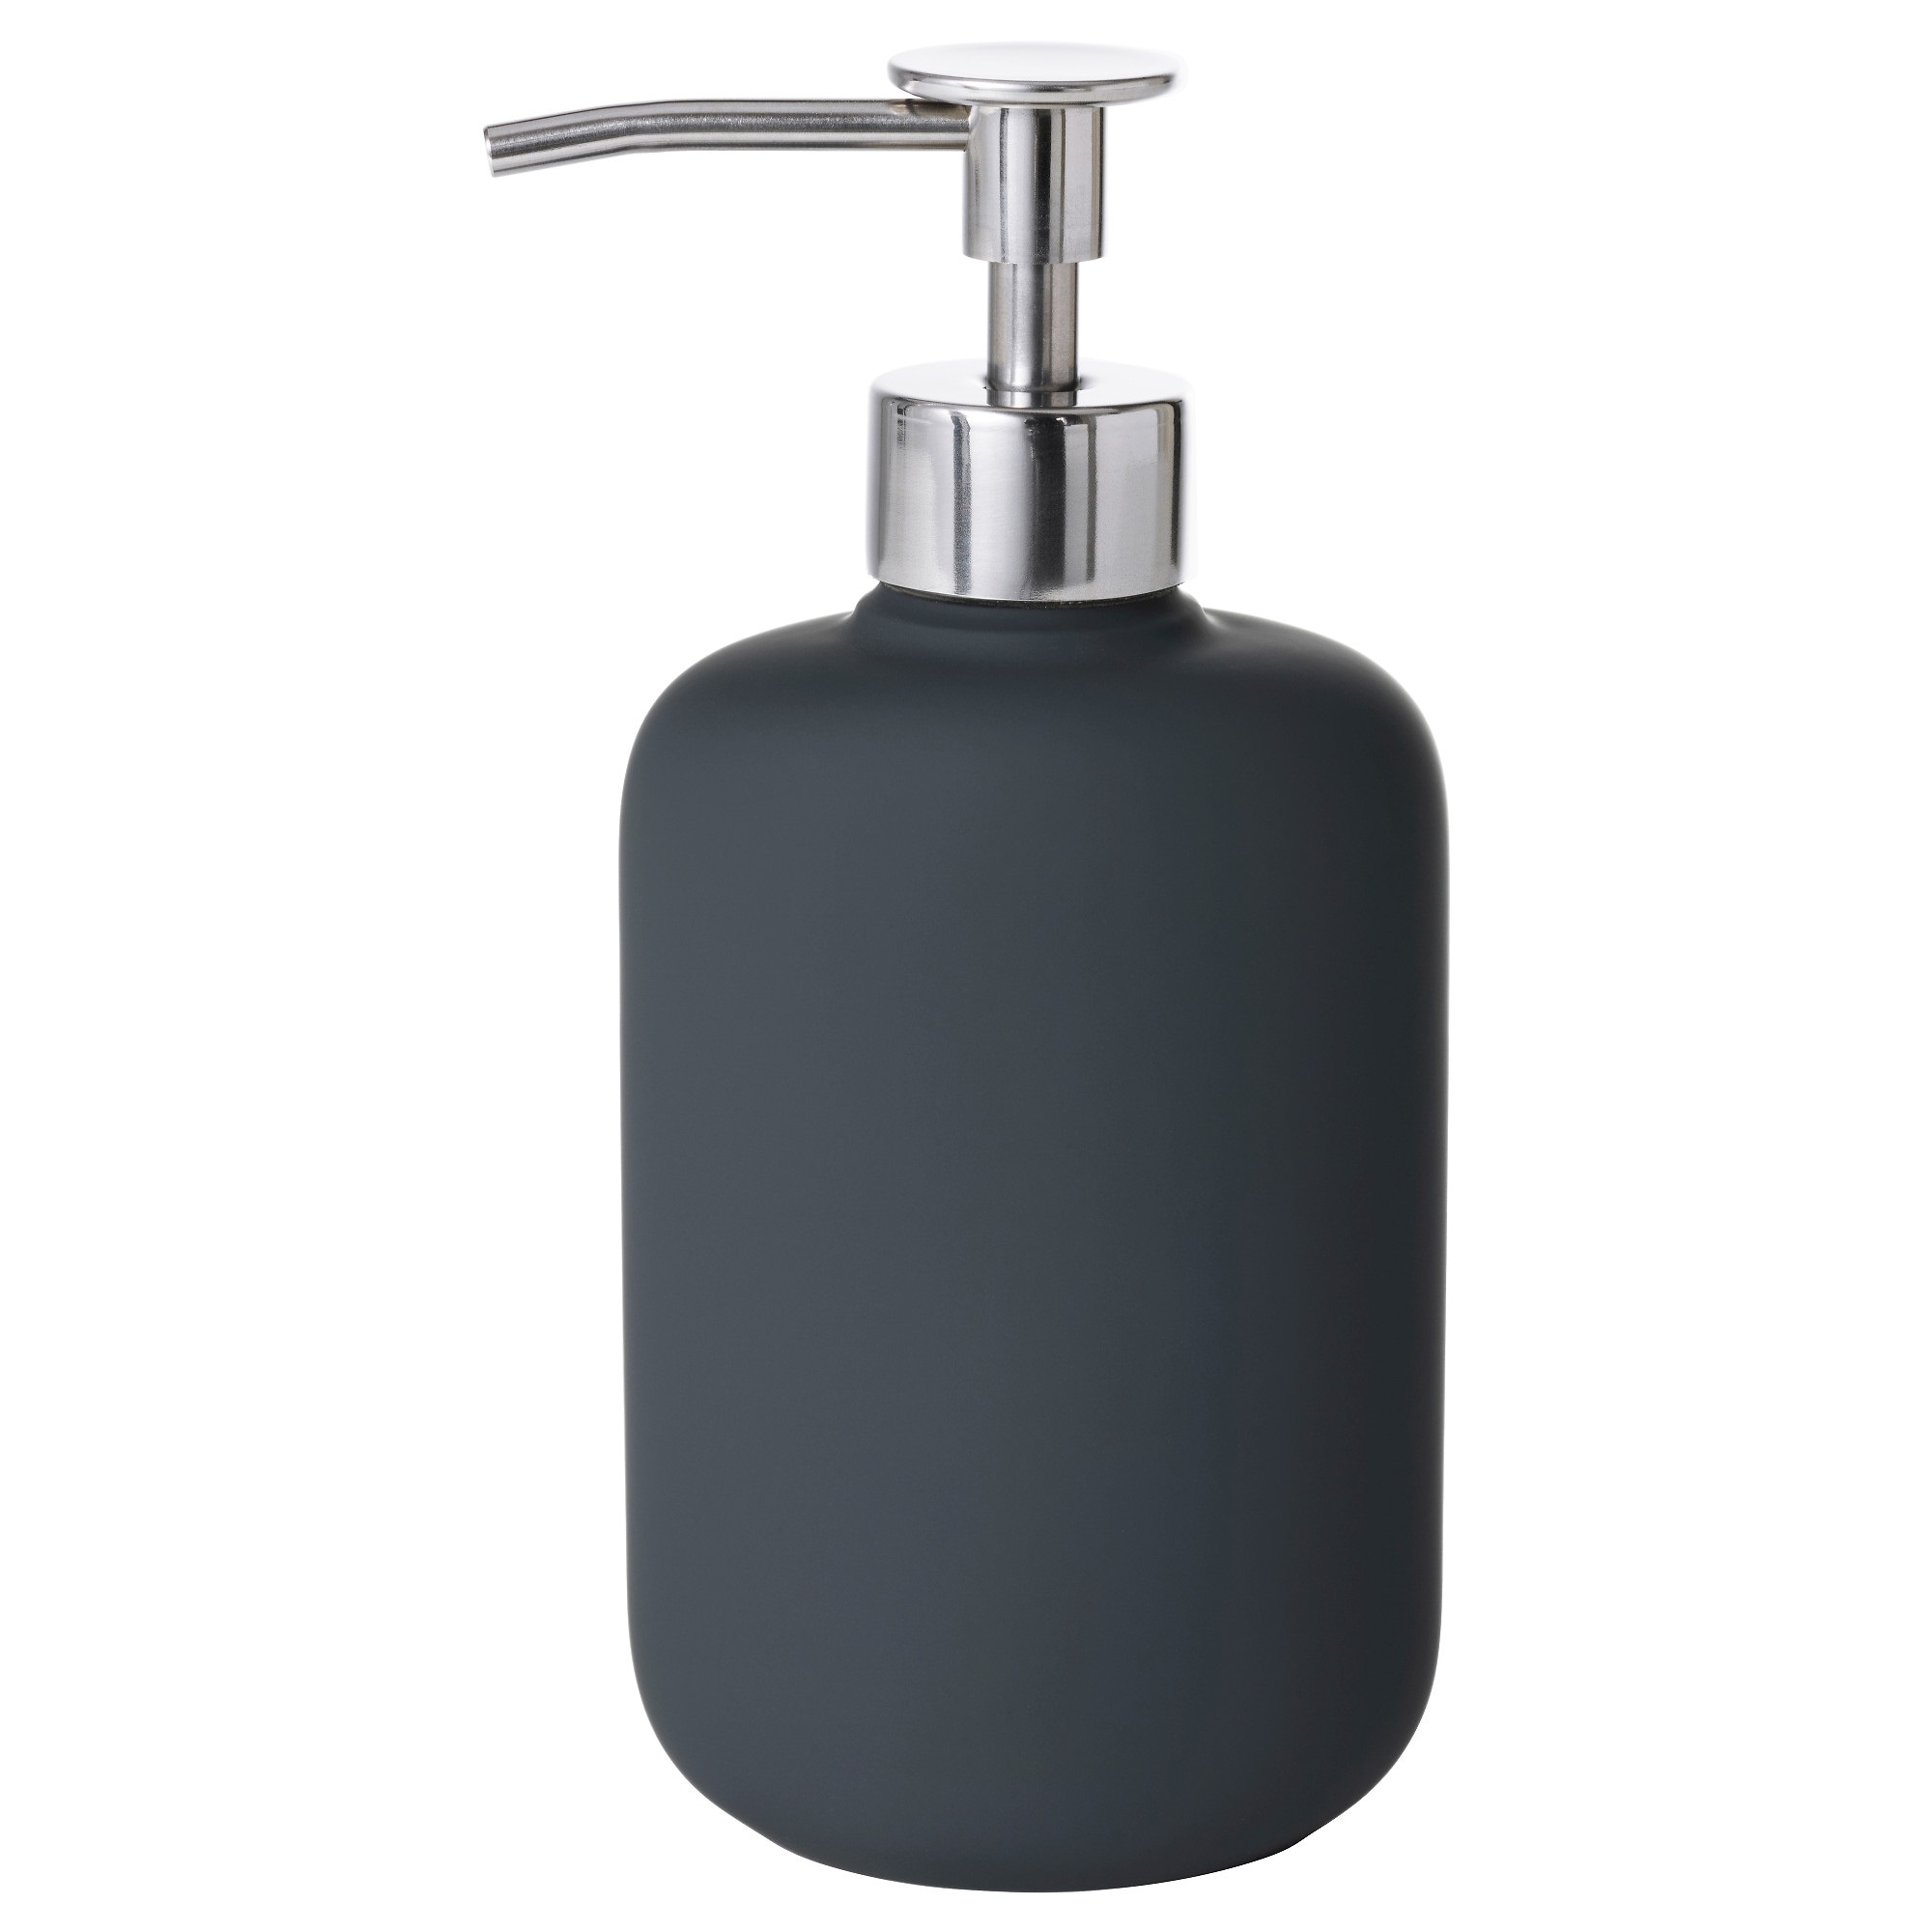 Plastic bathroom accessories uk - Ekoln Soap Dispenser Dark Gray Height 7 Volume 10 Oz Height